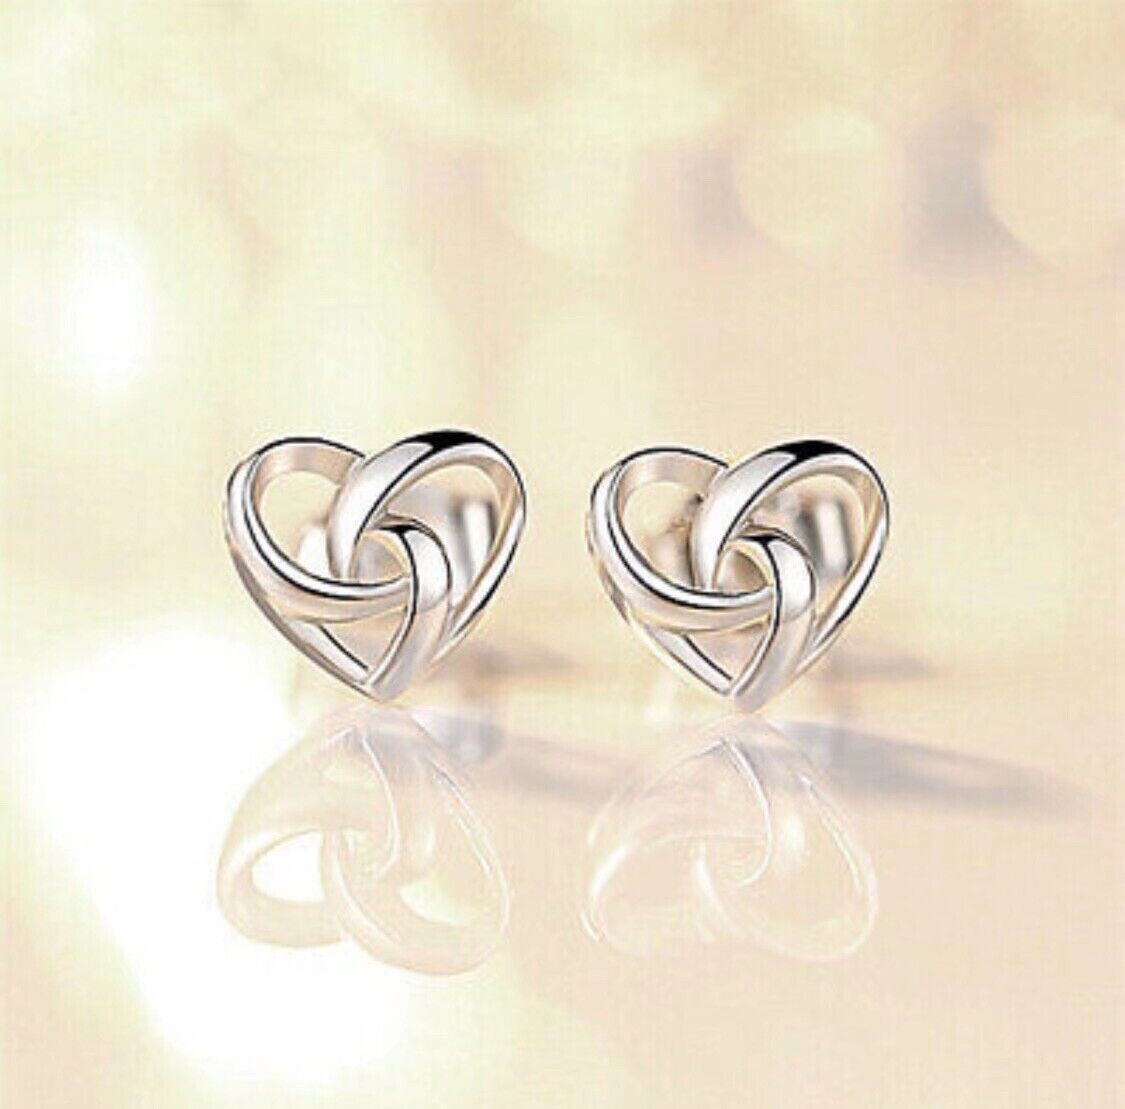 Jewellery - 925 Sterling Silver Stunning Swirl Heart Stud Earrings Womens Jewellery Gift UK